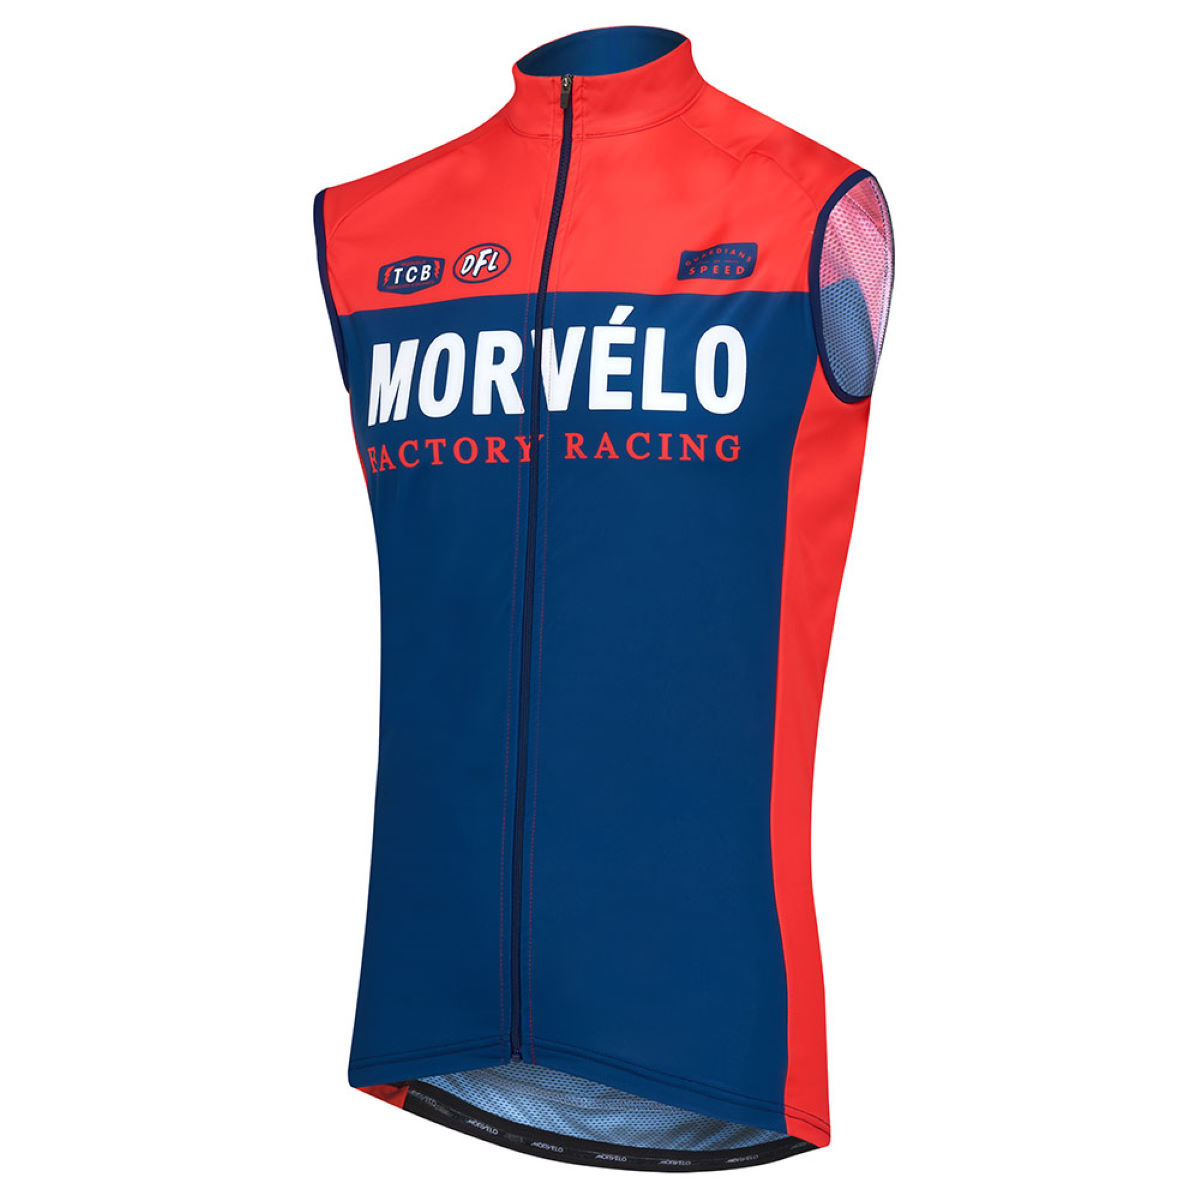 Gilet sans manches VTT Morvelo Factory Racing Covert - XS Factory Racing Gilets vélo